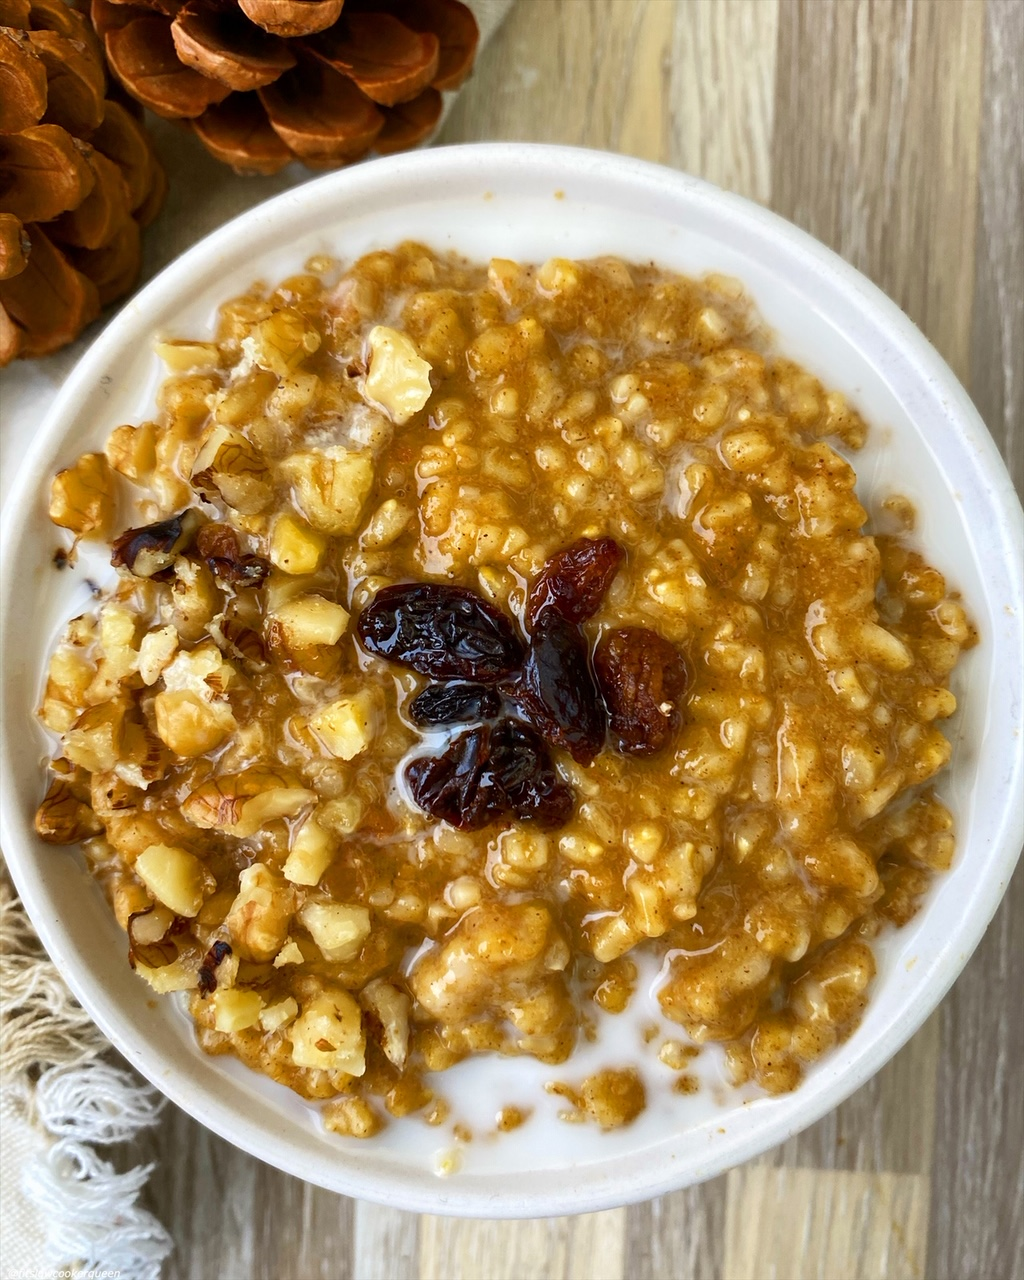 close up view of pumpkin oatmeal in a white bowl with raisins on top and almond milk